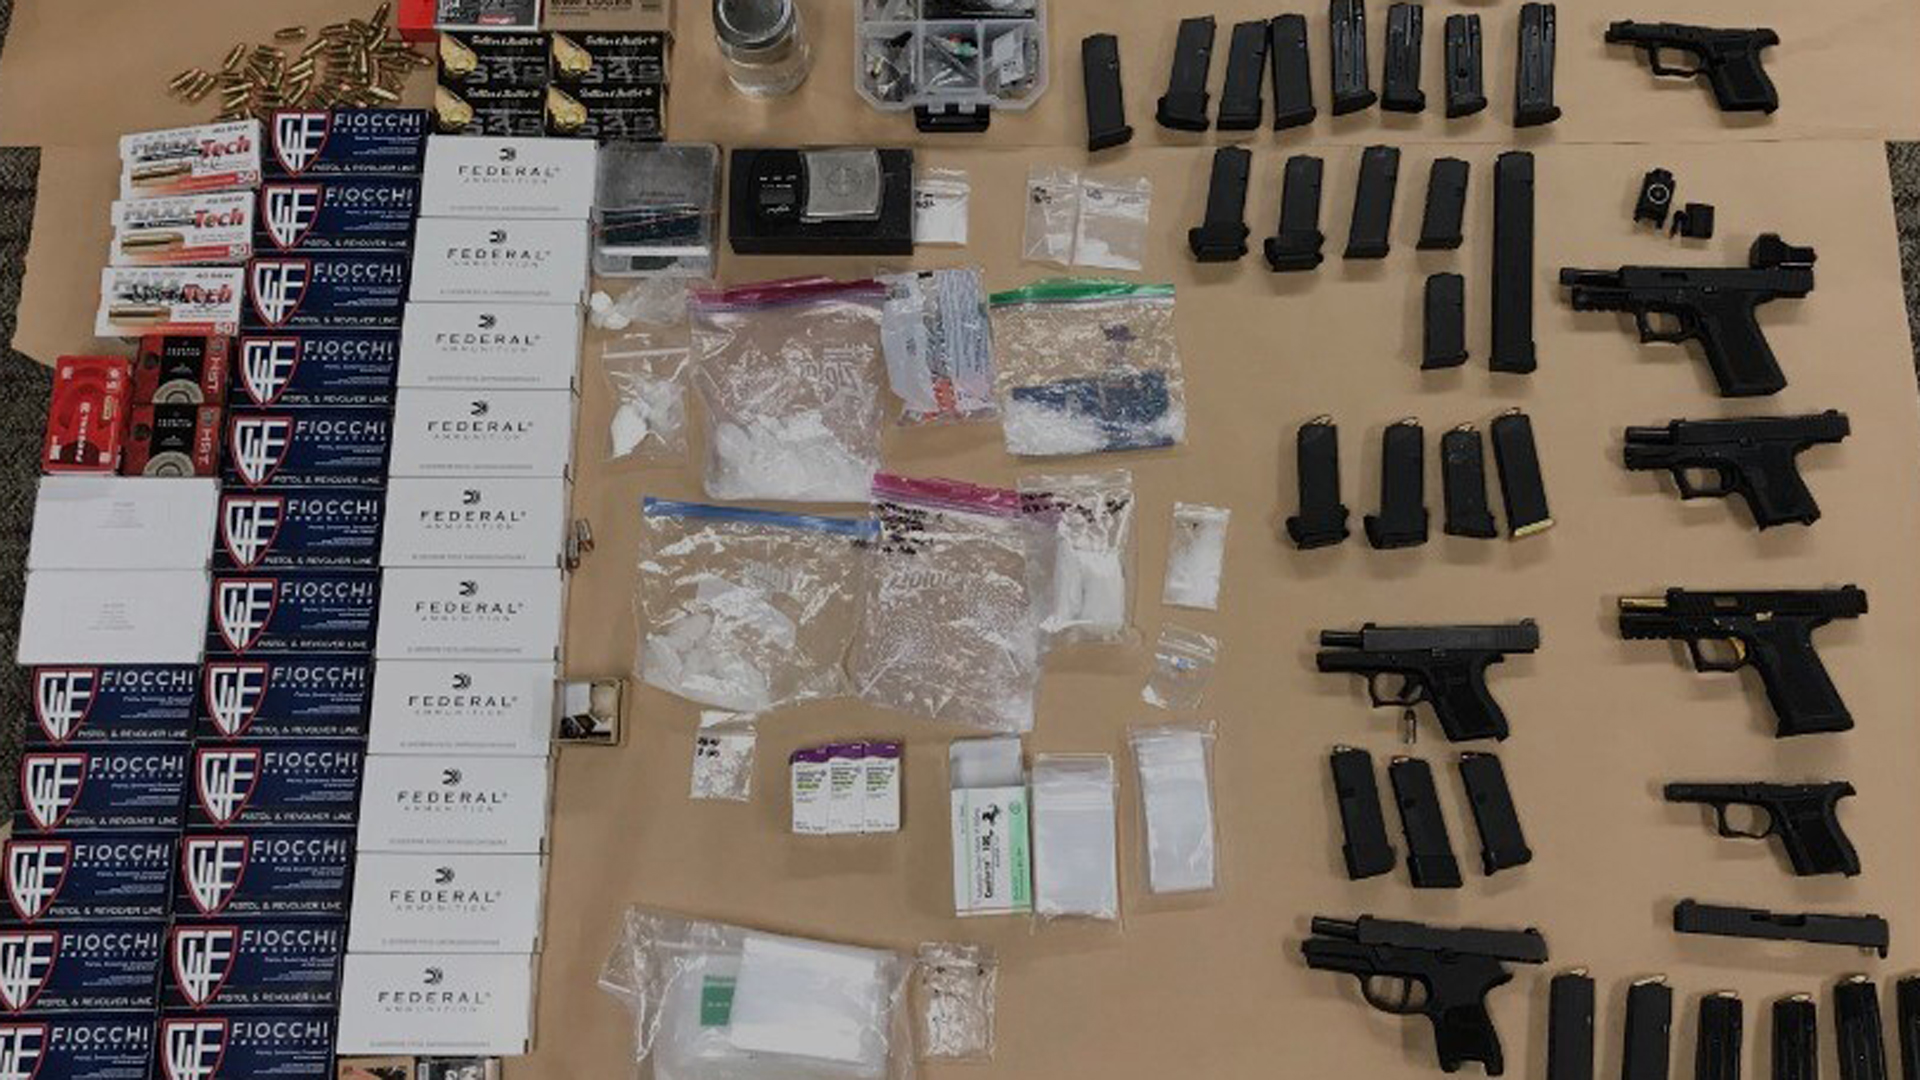 Fountain Valley police seized 6 handguns, ammunition, fentanyl, methamphetamine and other drugs from the home of a convicted felon in HuntingtonBeach onAug. 26, 2019. (Credit: Fountain Valley Police Department)